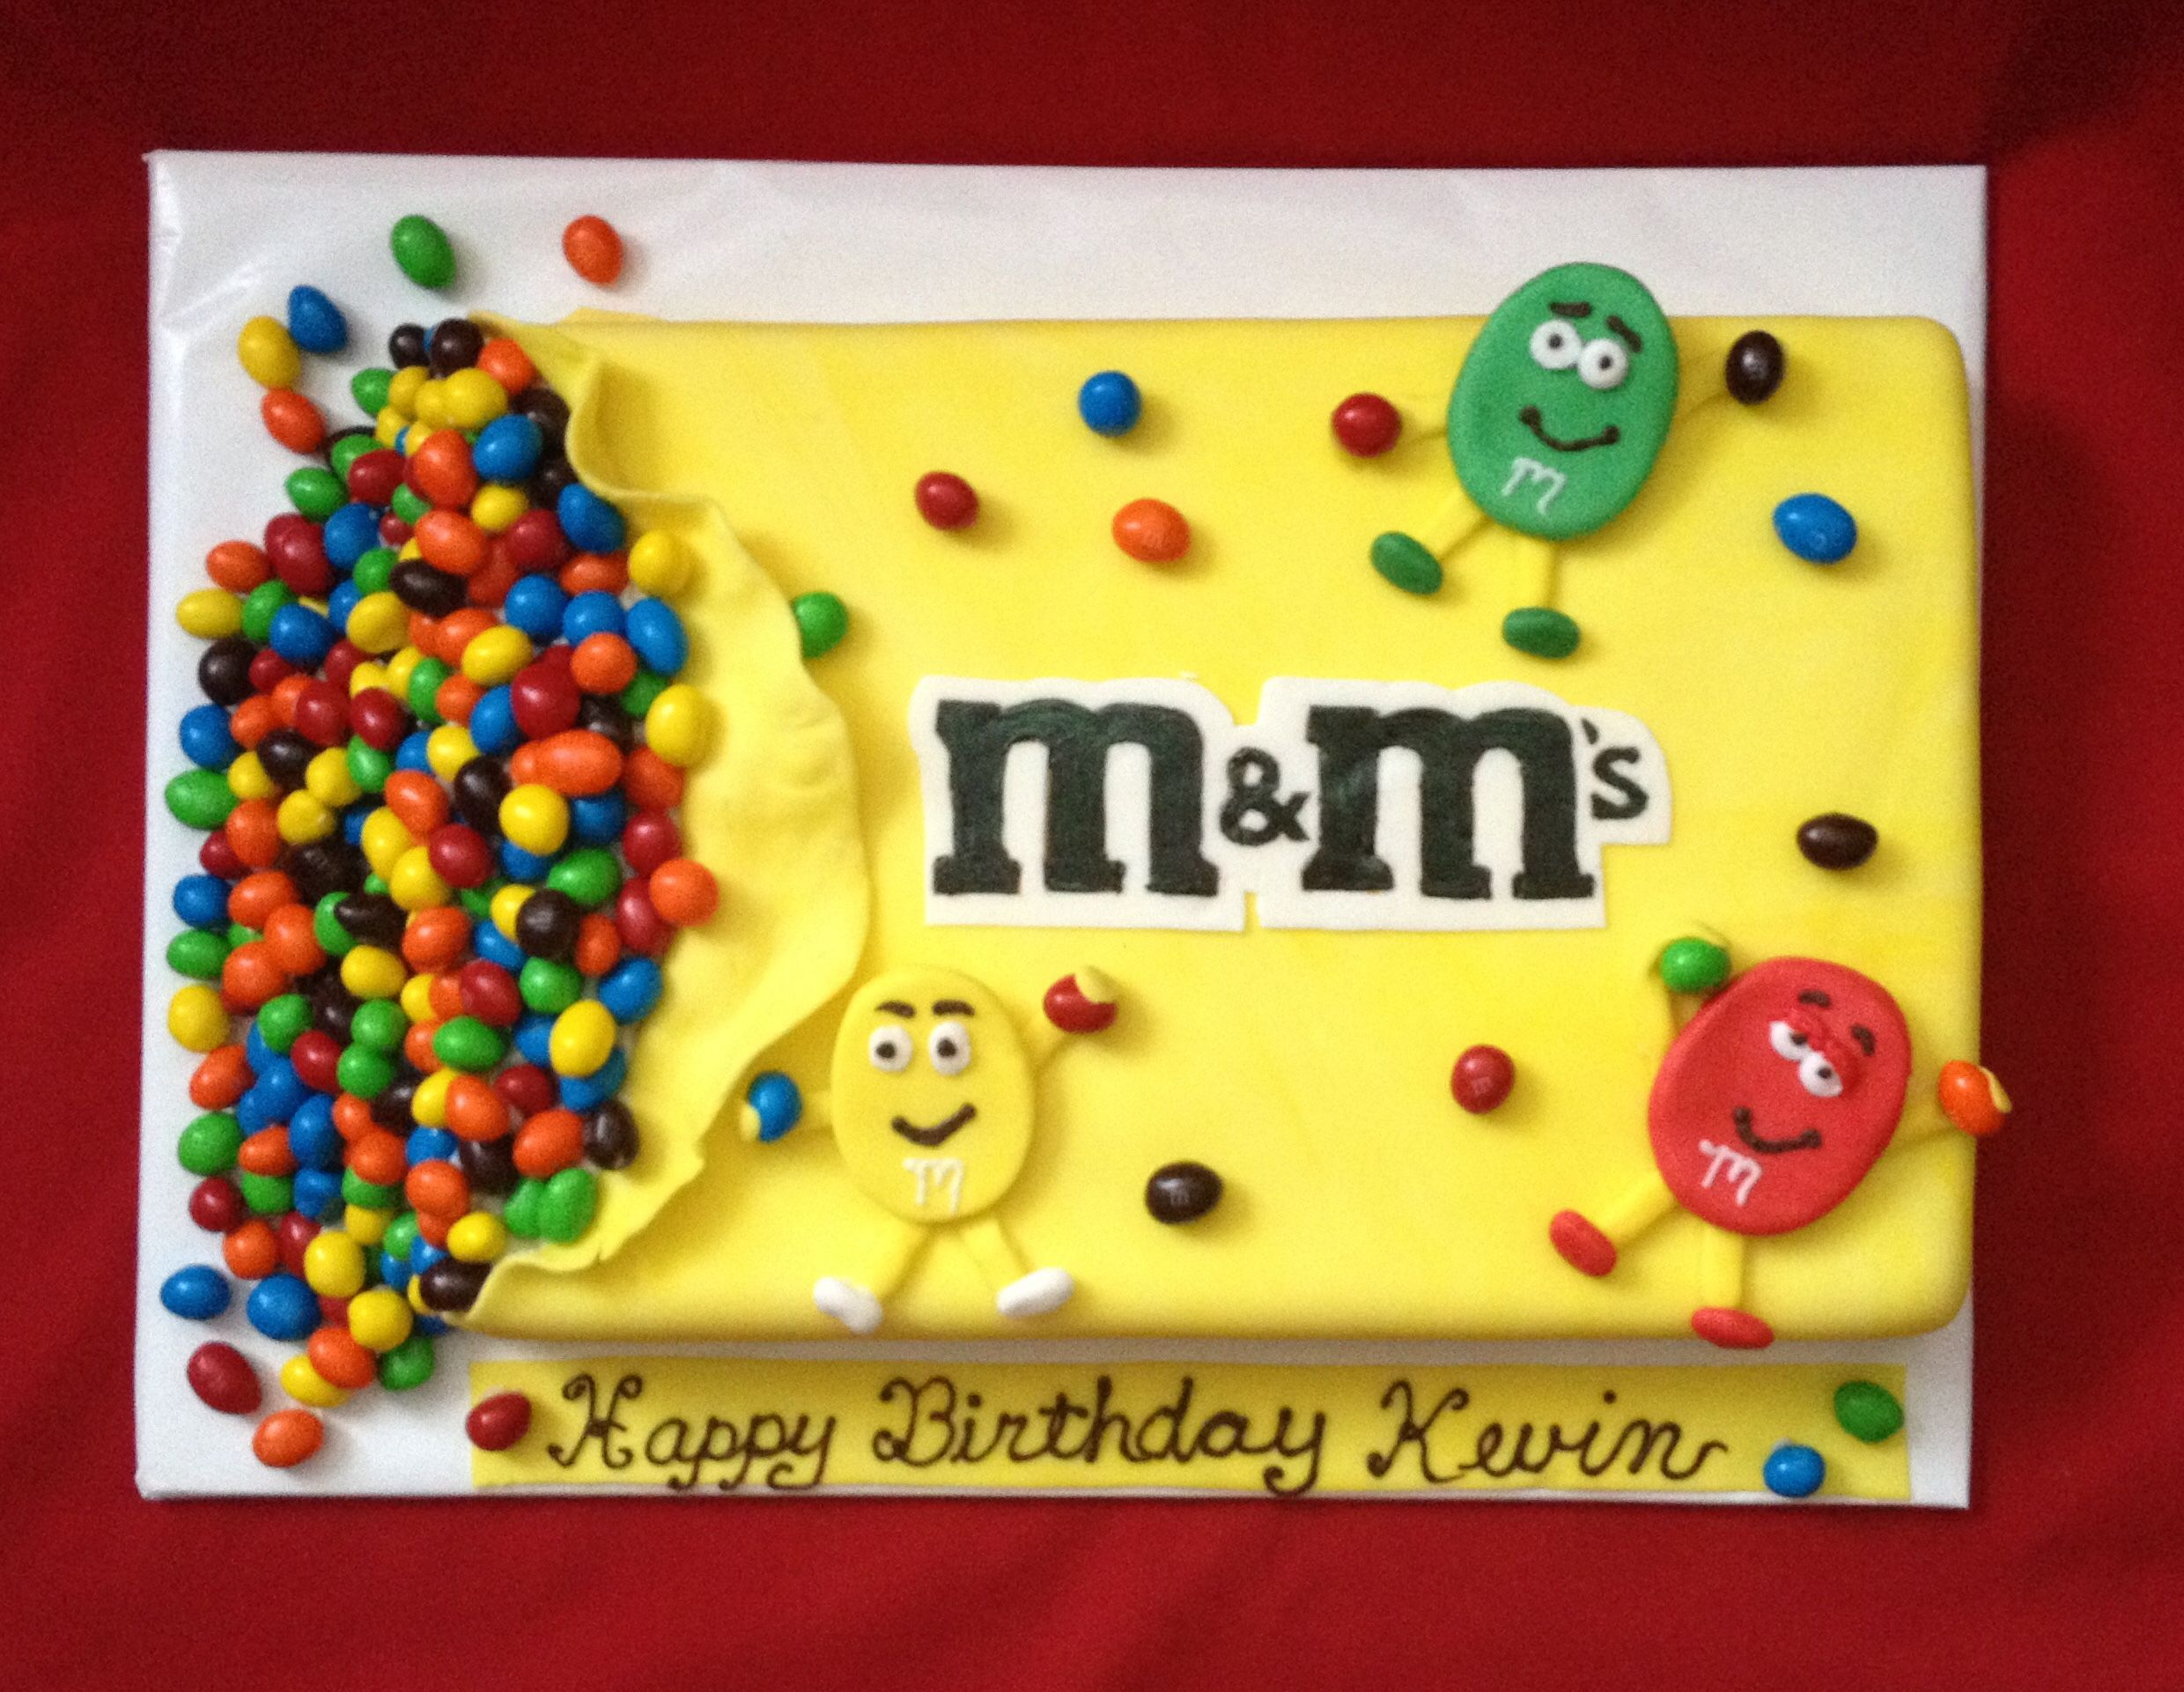 MM Cake 11x15 Sheet Cake Serves 25 guests Buttercream icing